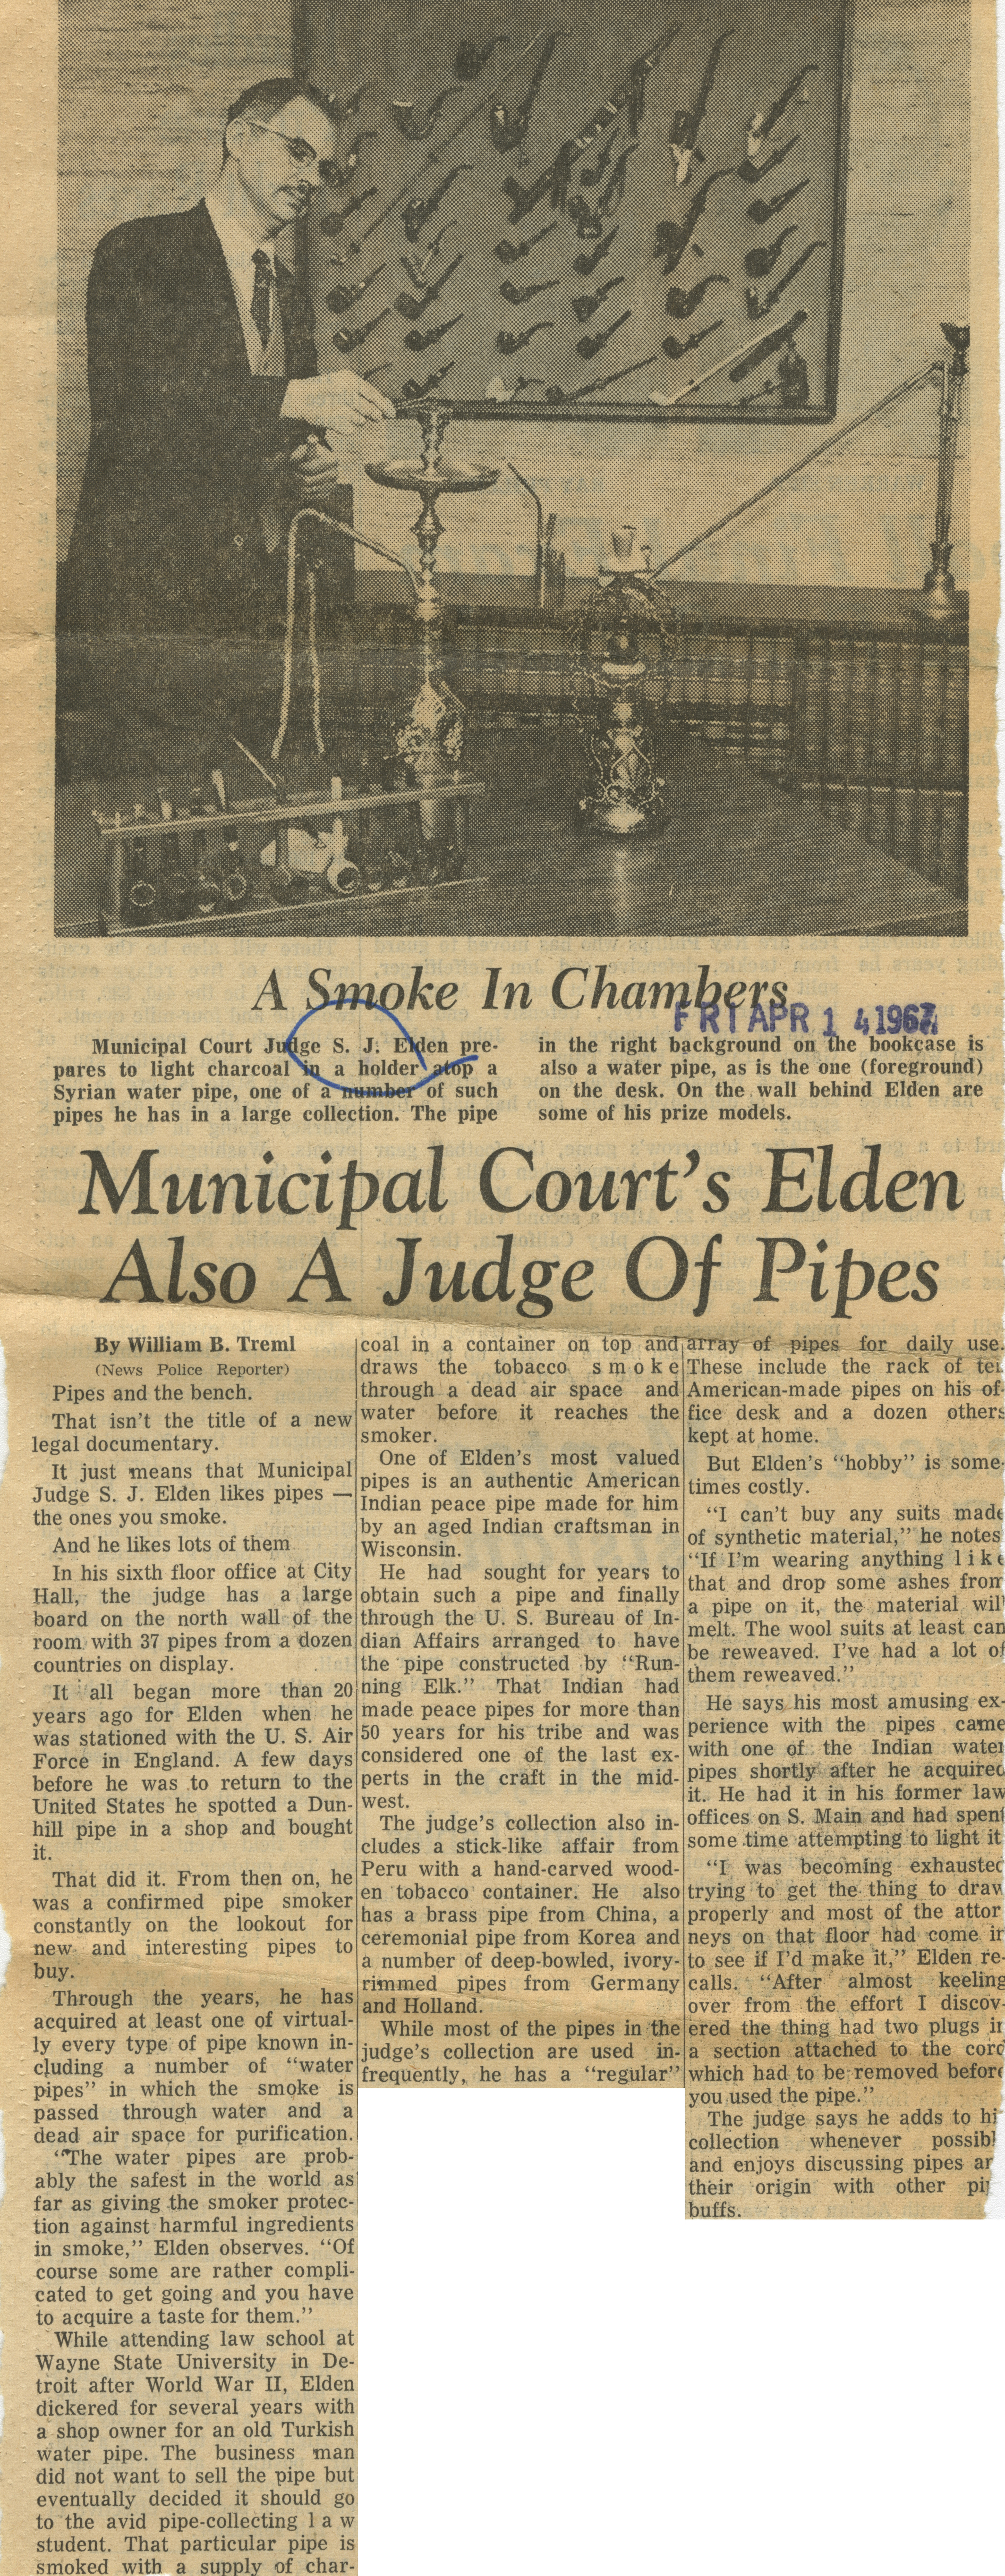 Municipal Court's Elden Also A Judge Of Pipes image